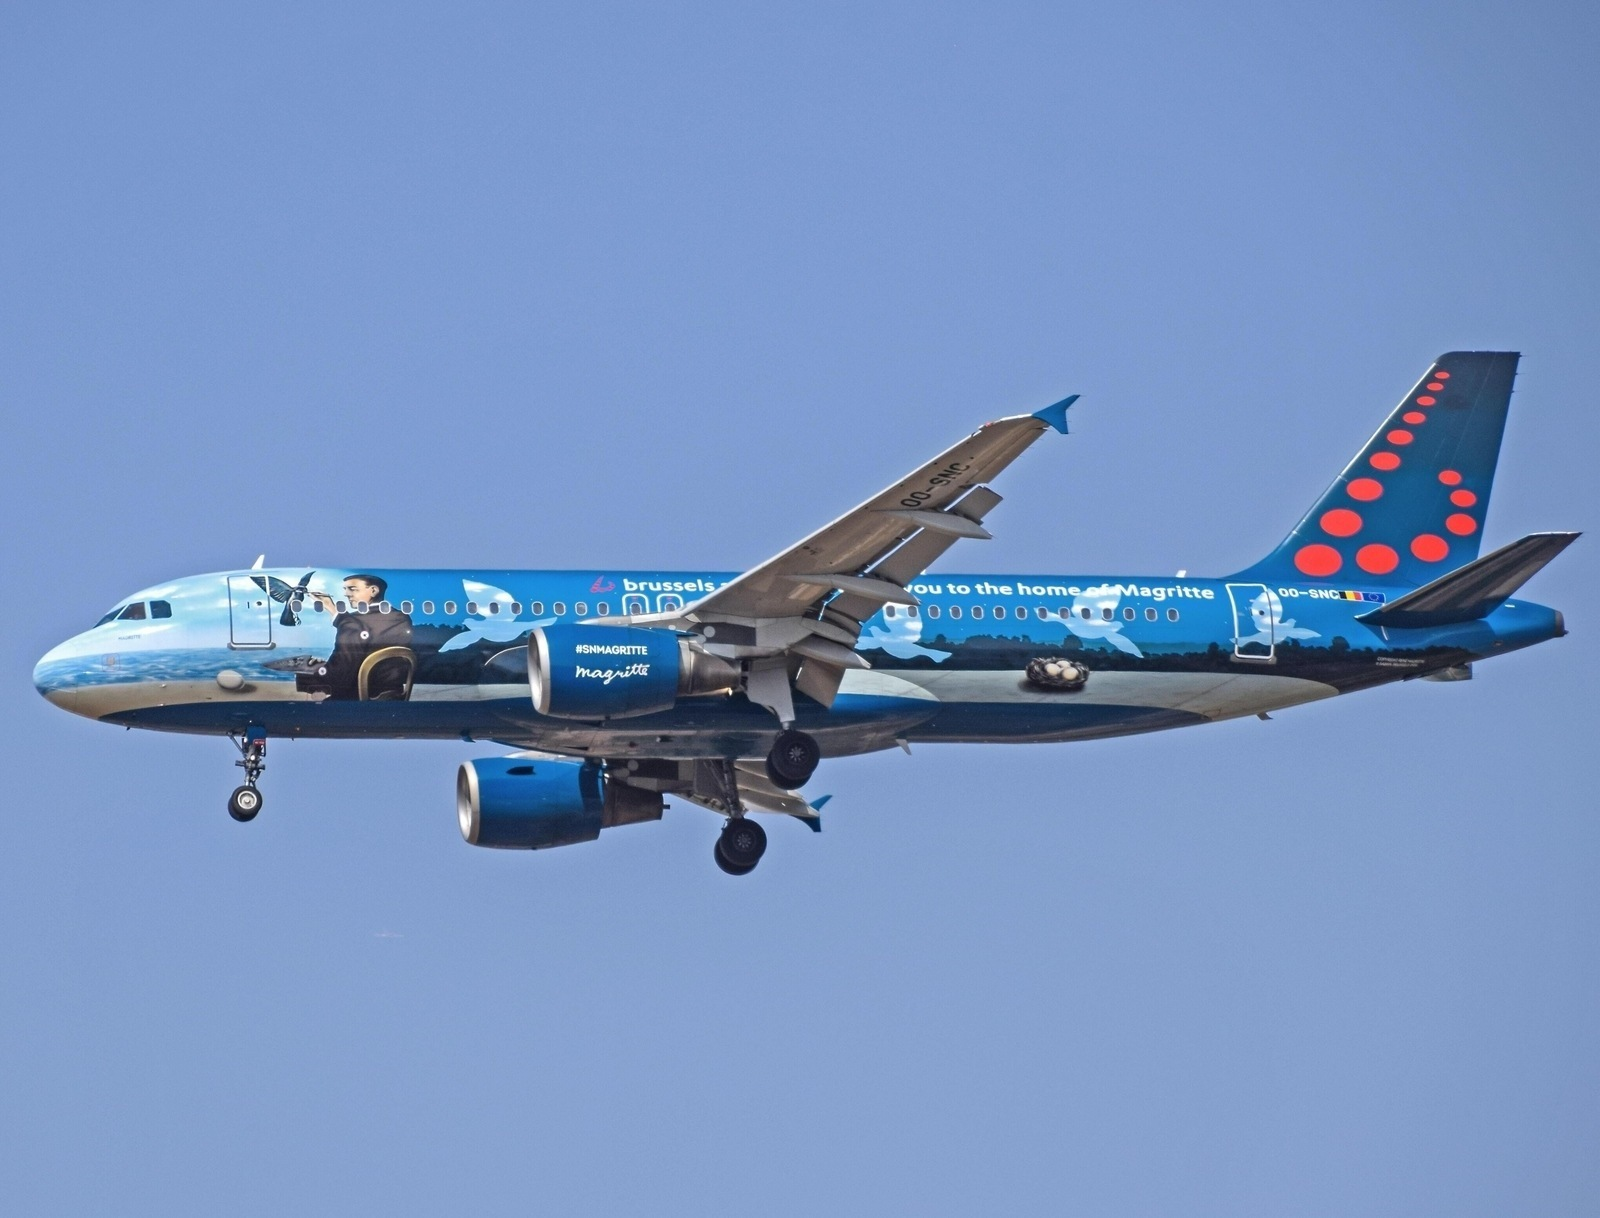 Brussels Airlines Plane Flying